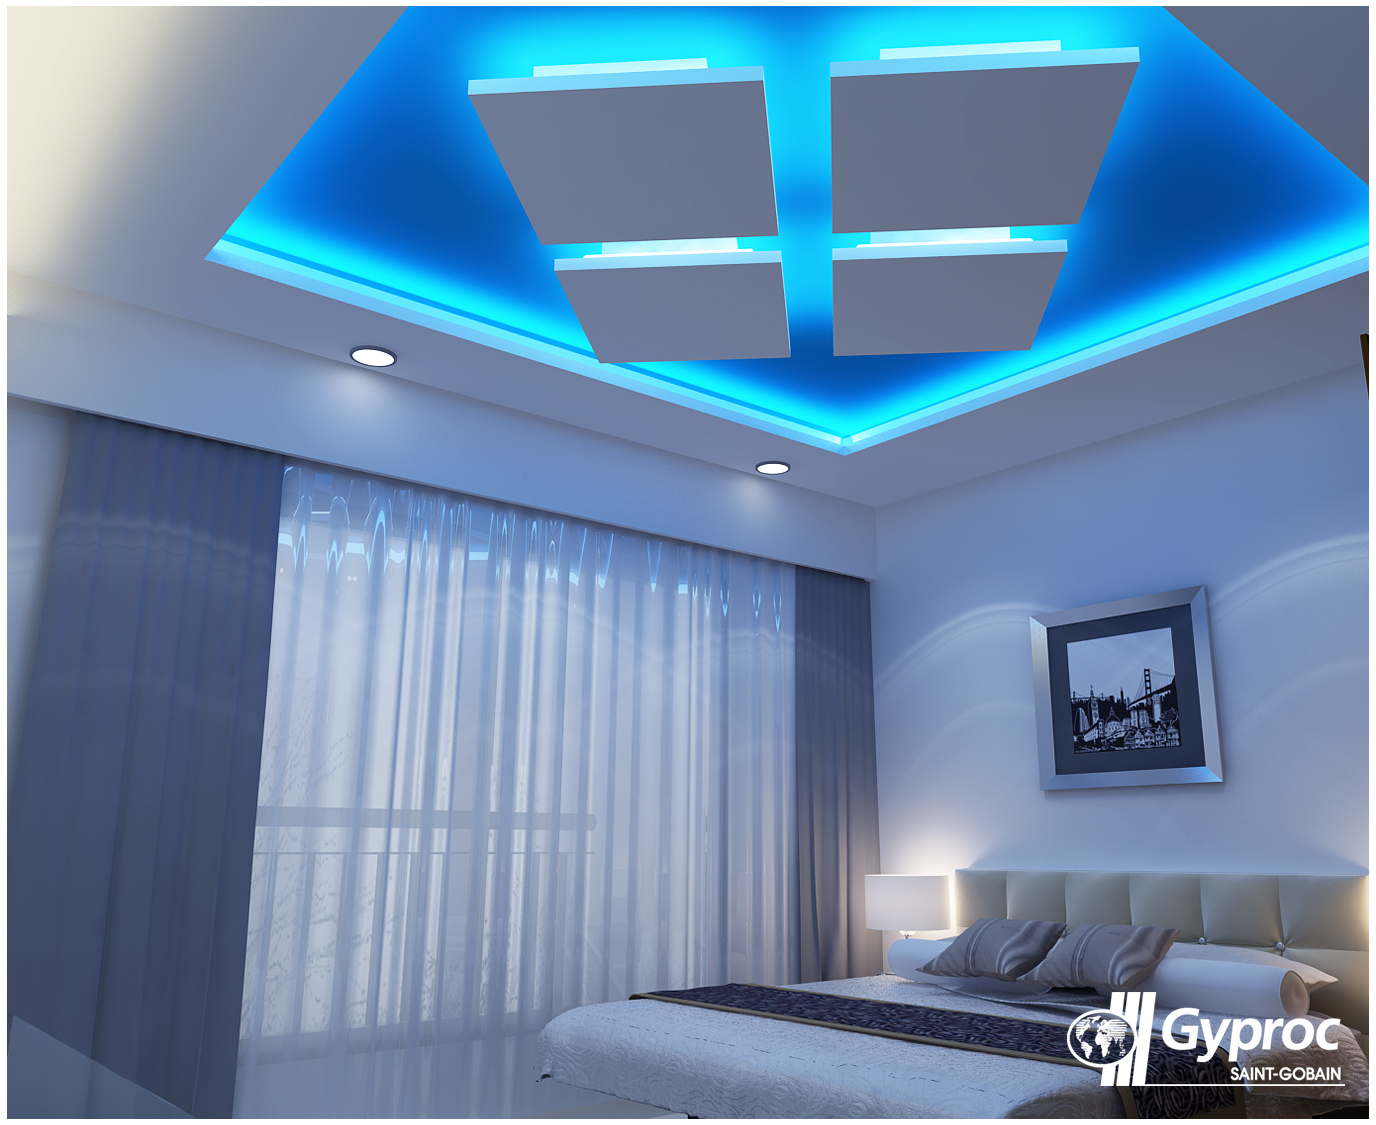 Brighten your bedroom with a ceiling like this one to for Bedroom gypsum ceiling designs photos